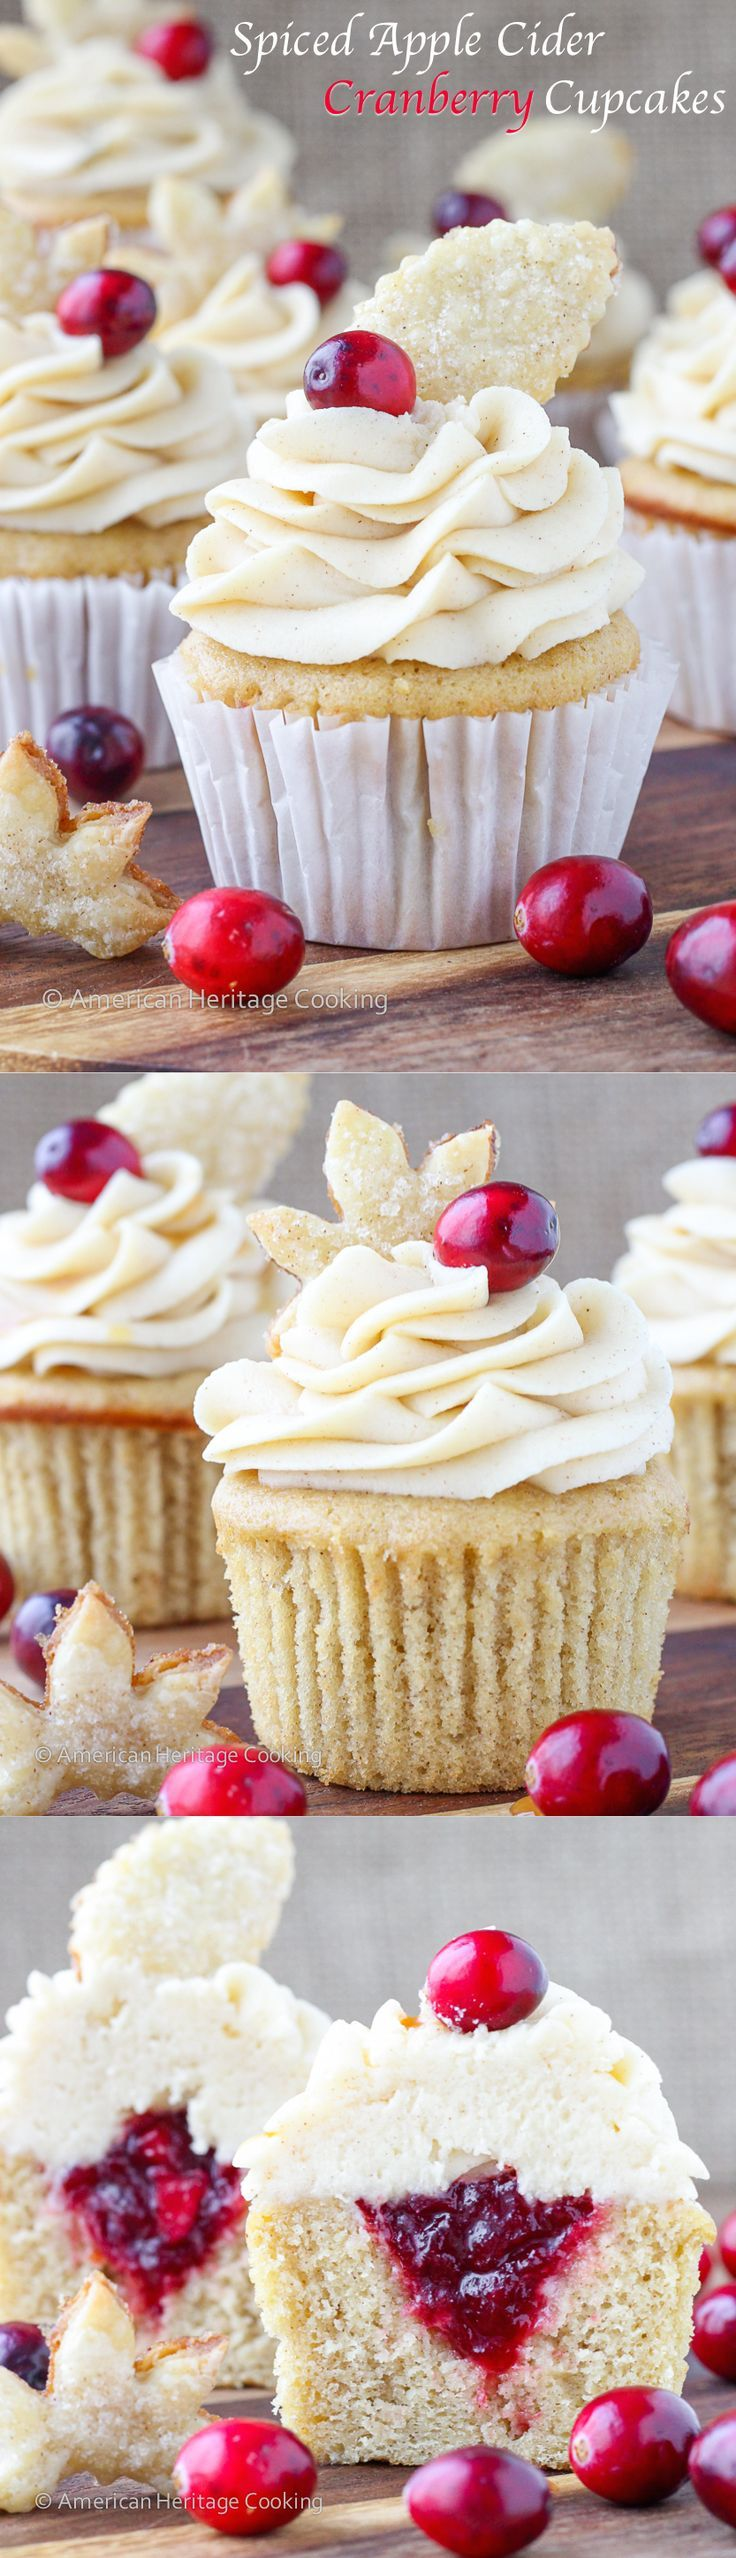 Spiced Apple Cider Cranberry Cupcakes   Soft, moist apple cider cinnamon cake filled with spiced cranberry compote and topped with a cinnamon cream cheese butter cream! And don't forget the sugared pie crust leaf!